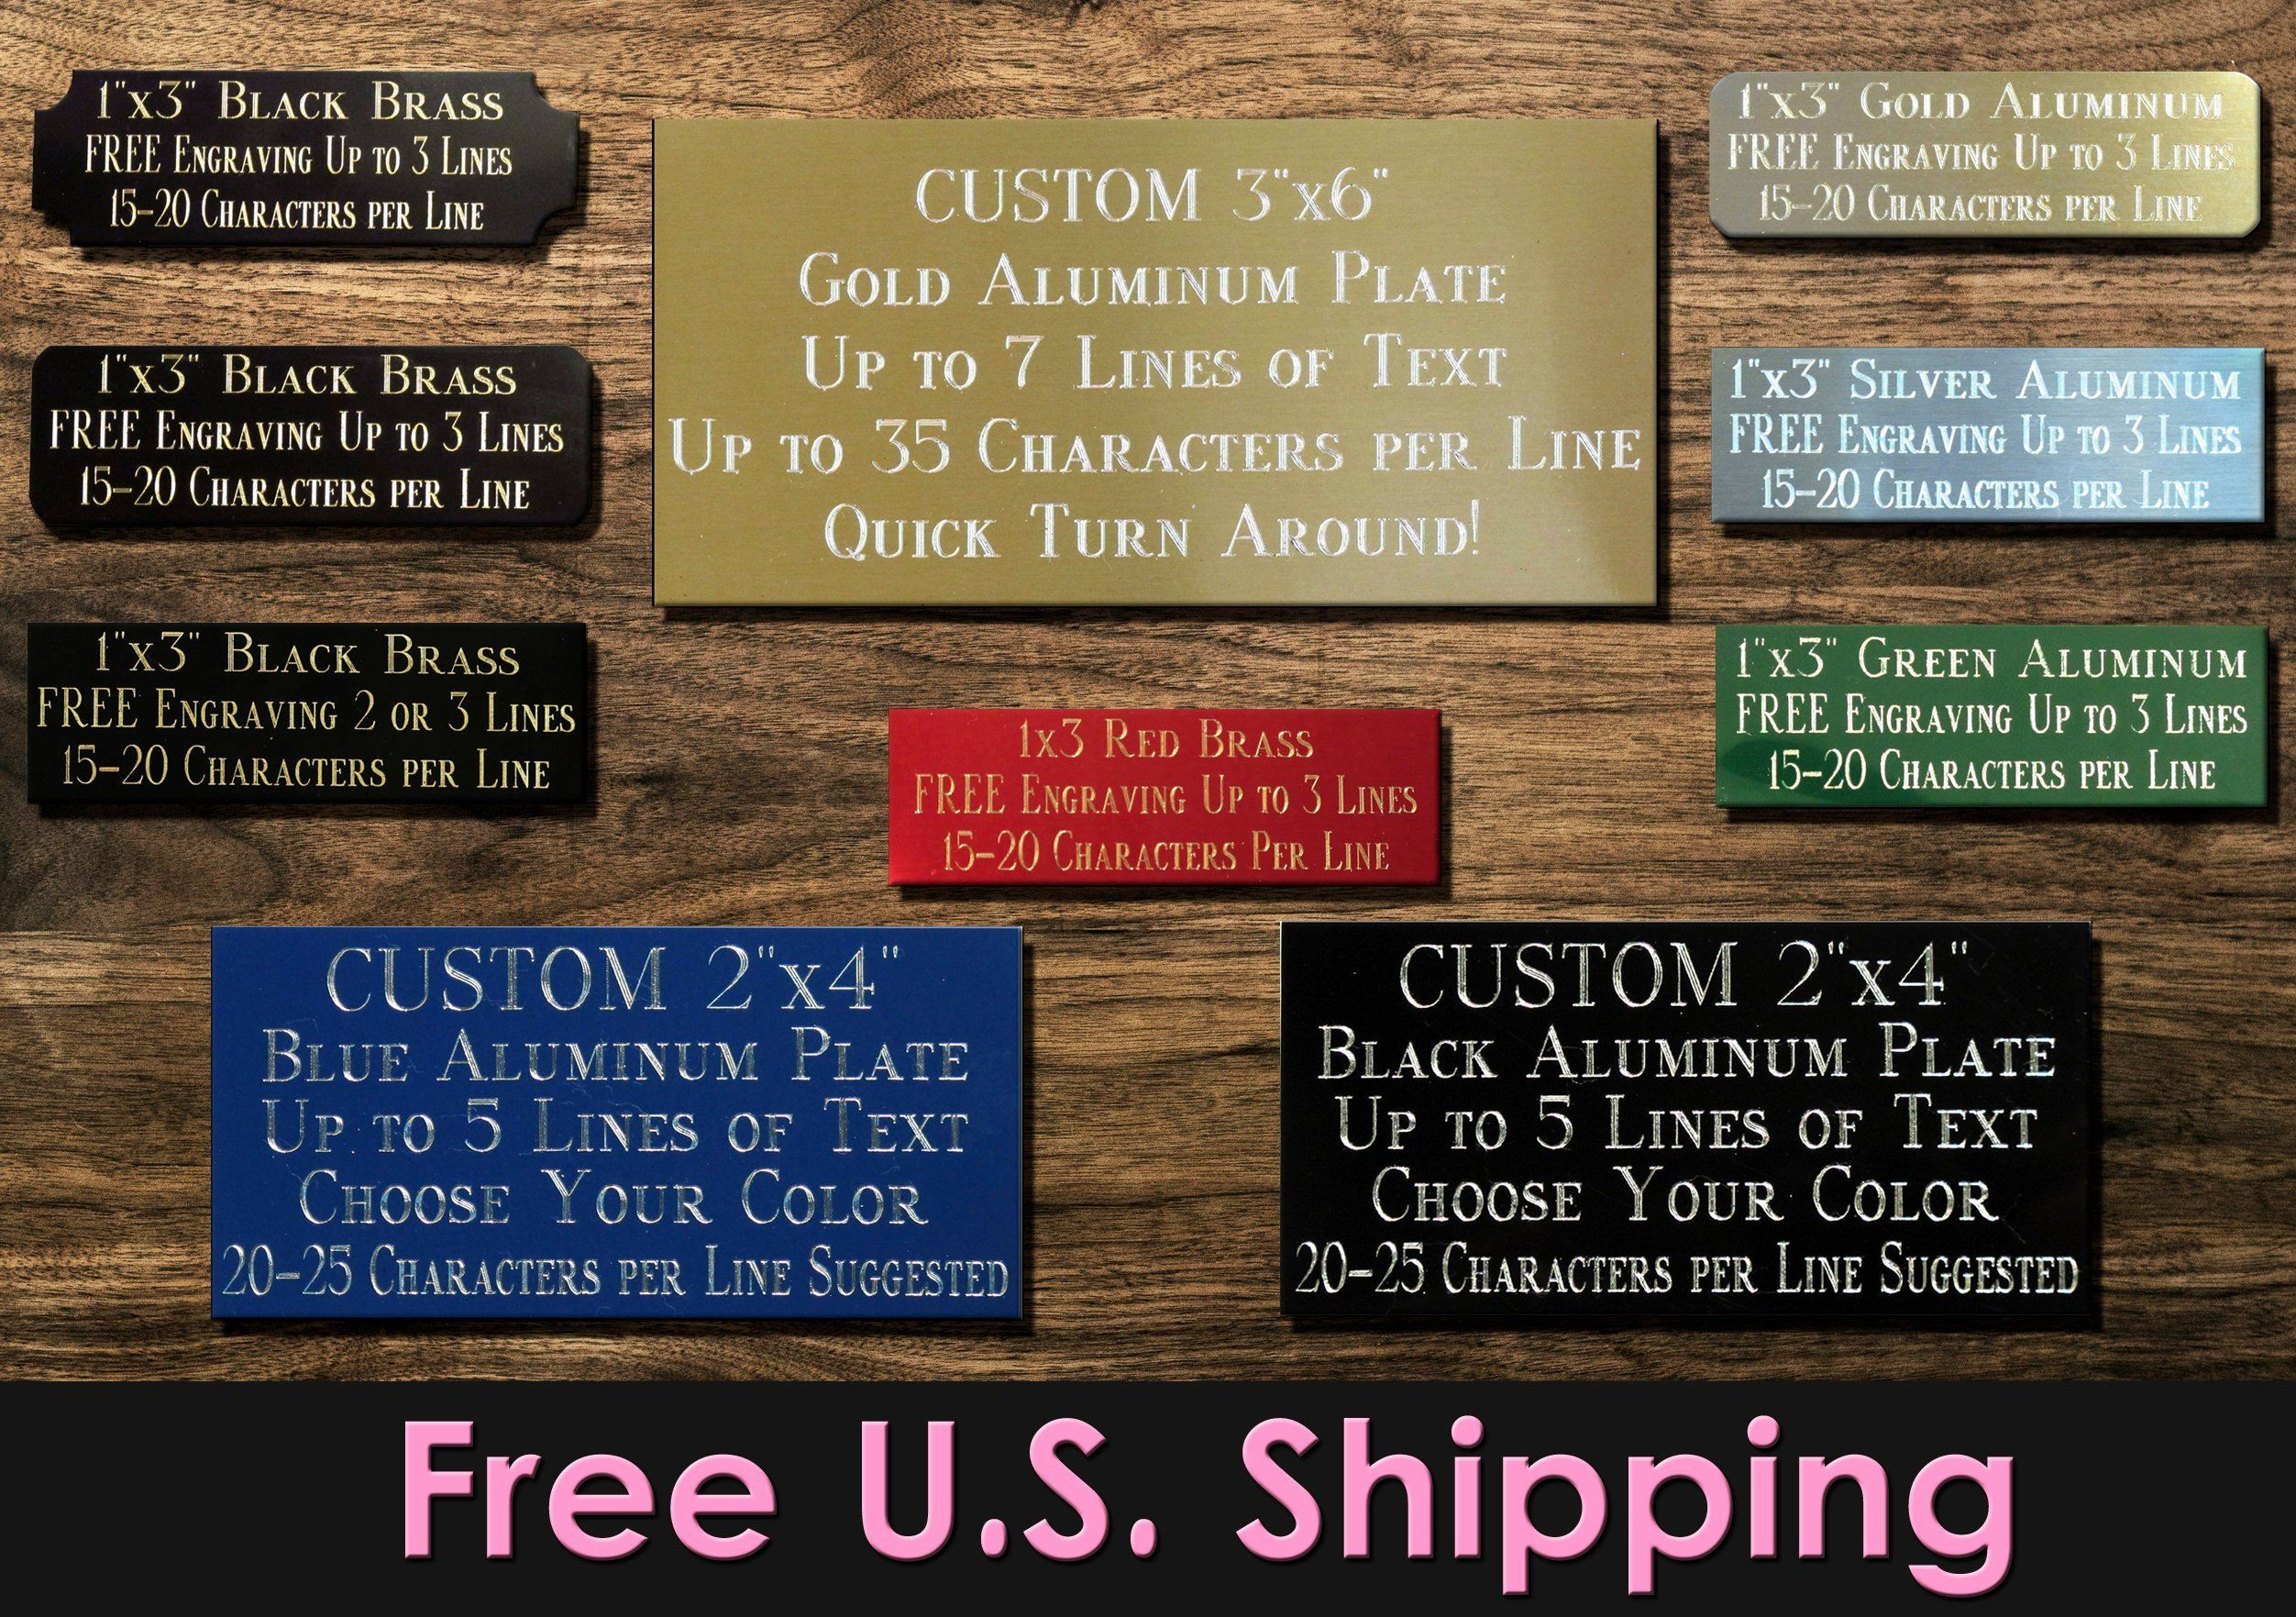 Engranving metal,Trophy engraving,Personalized plaque,plaque